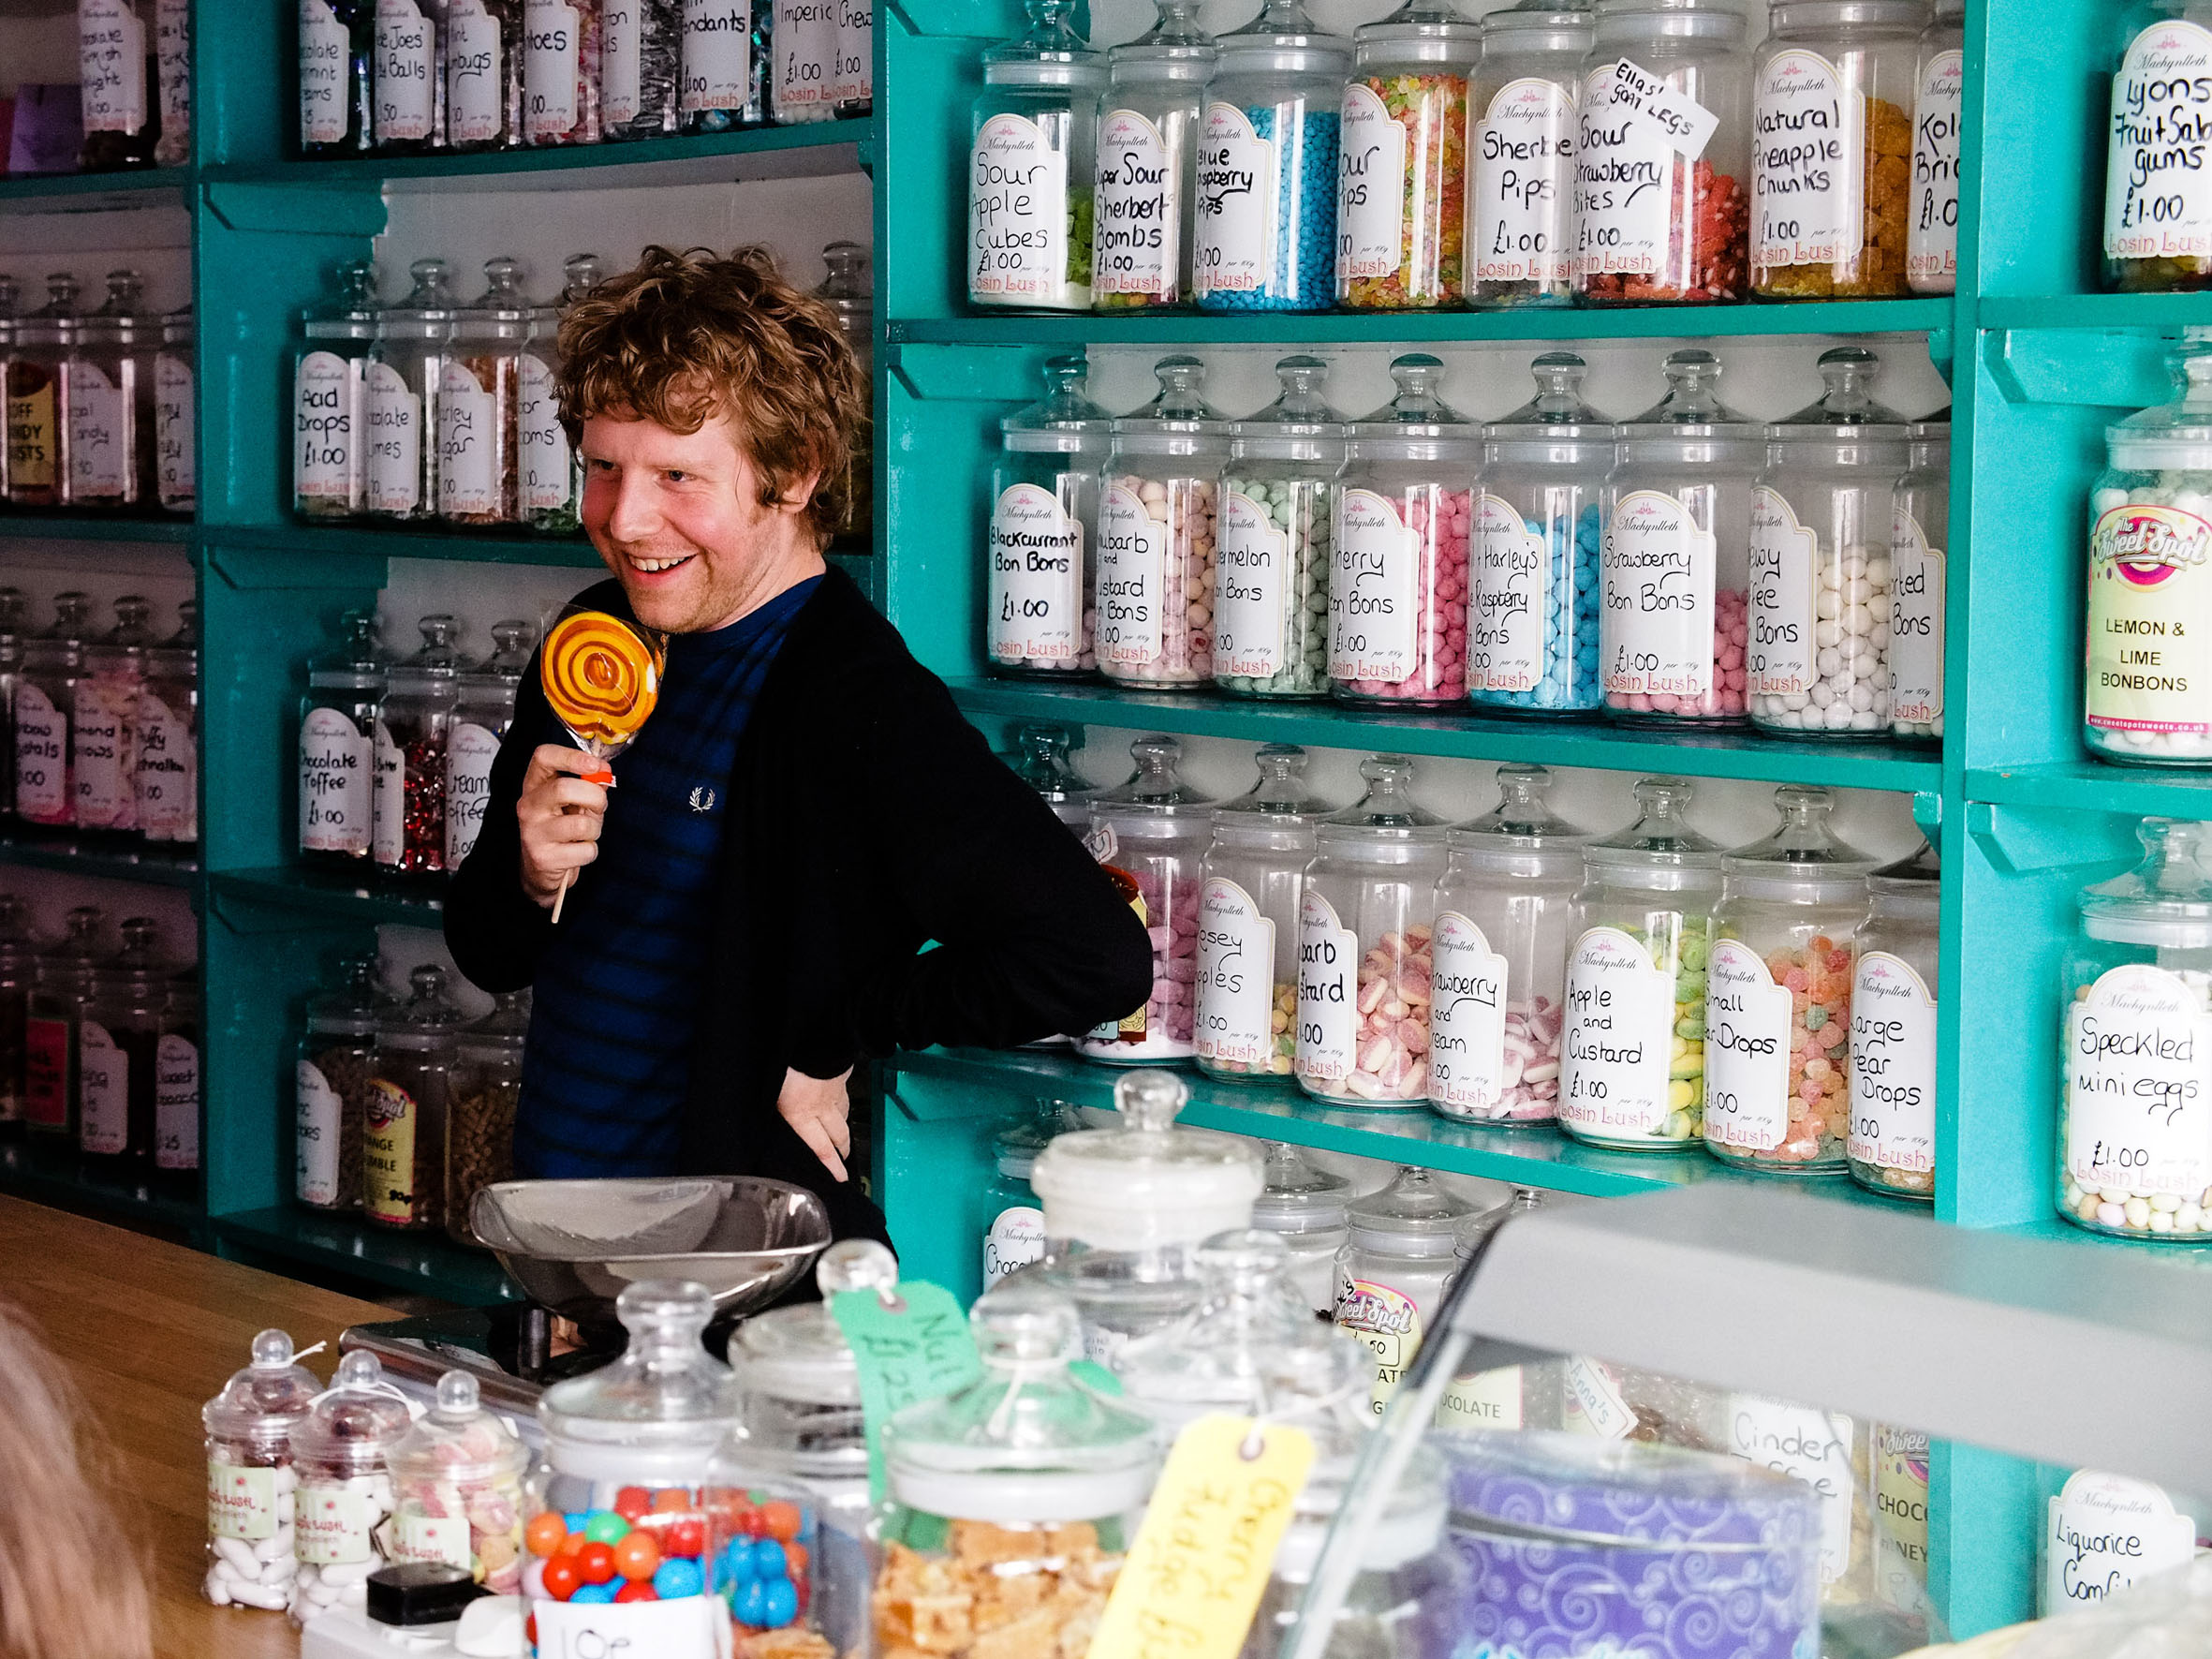 Josh Widdicombe doing a comedy show in a sweet shop in Machynlleth.